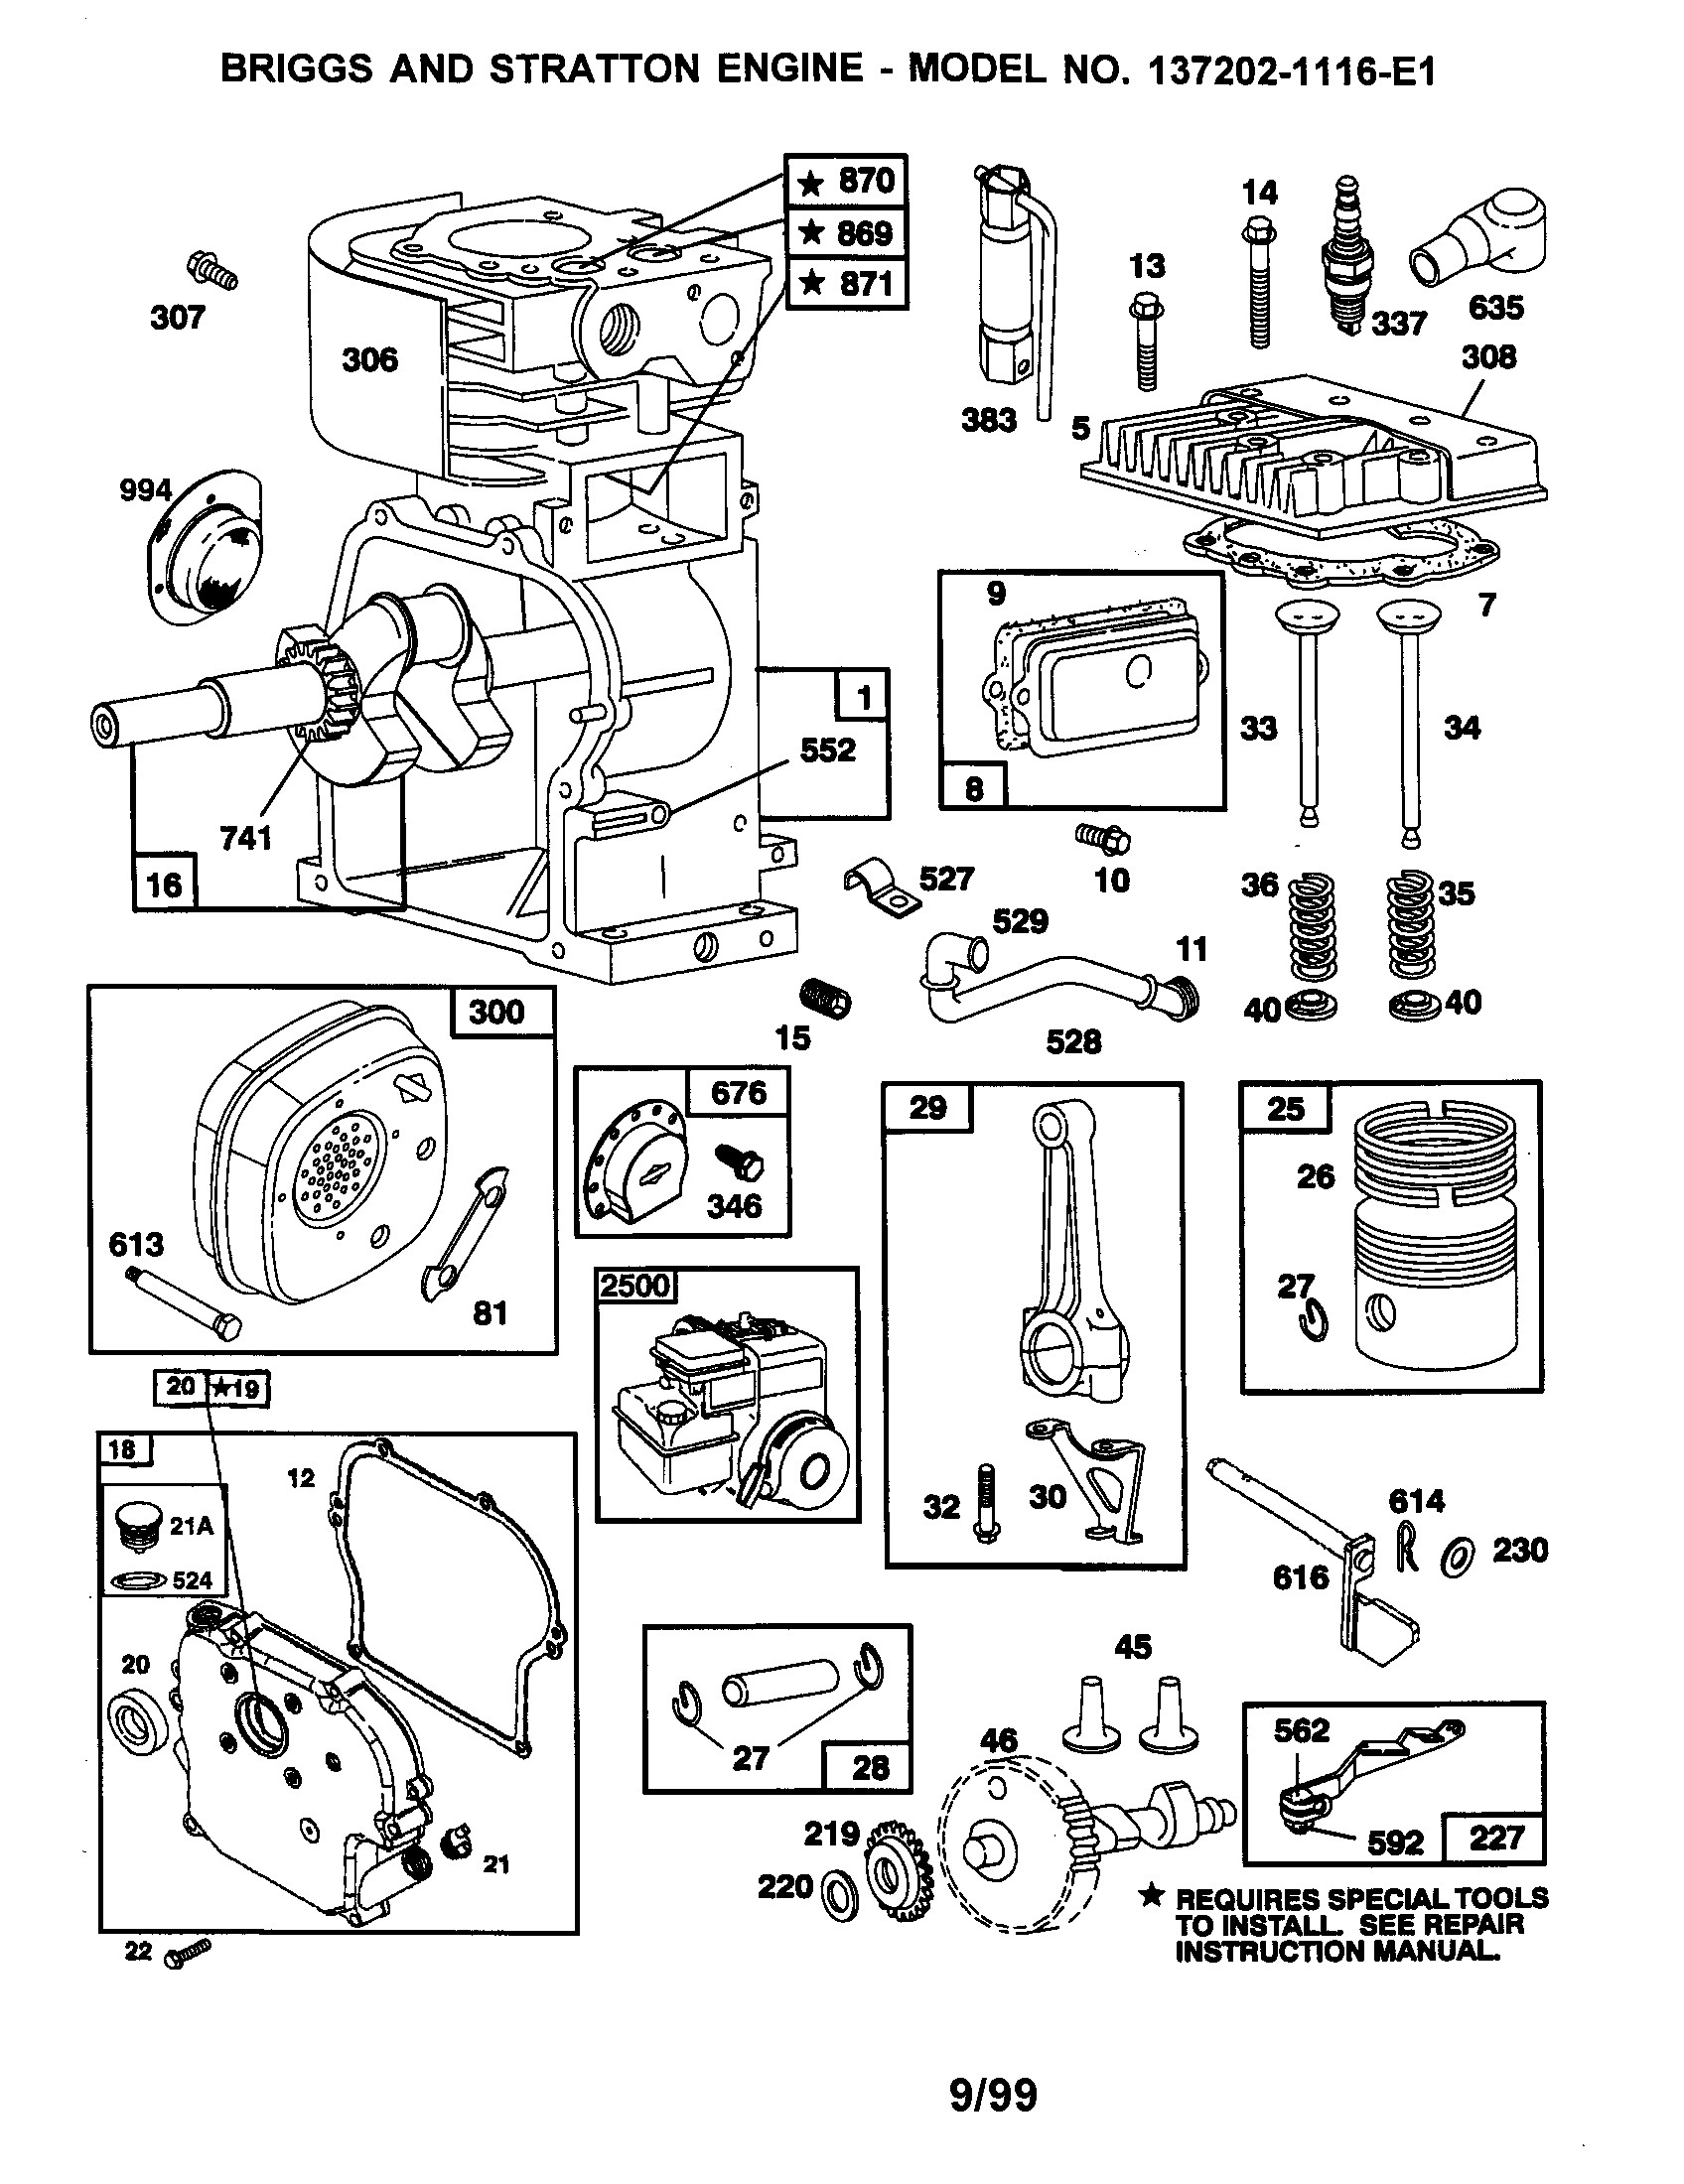 Briggs And Stratton 550ex Parts Diagram Lawn Mower Engine Of